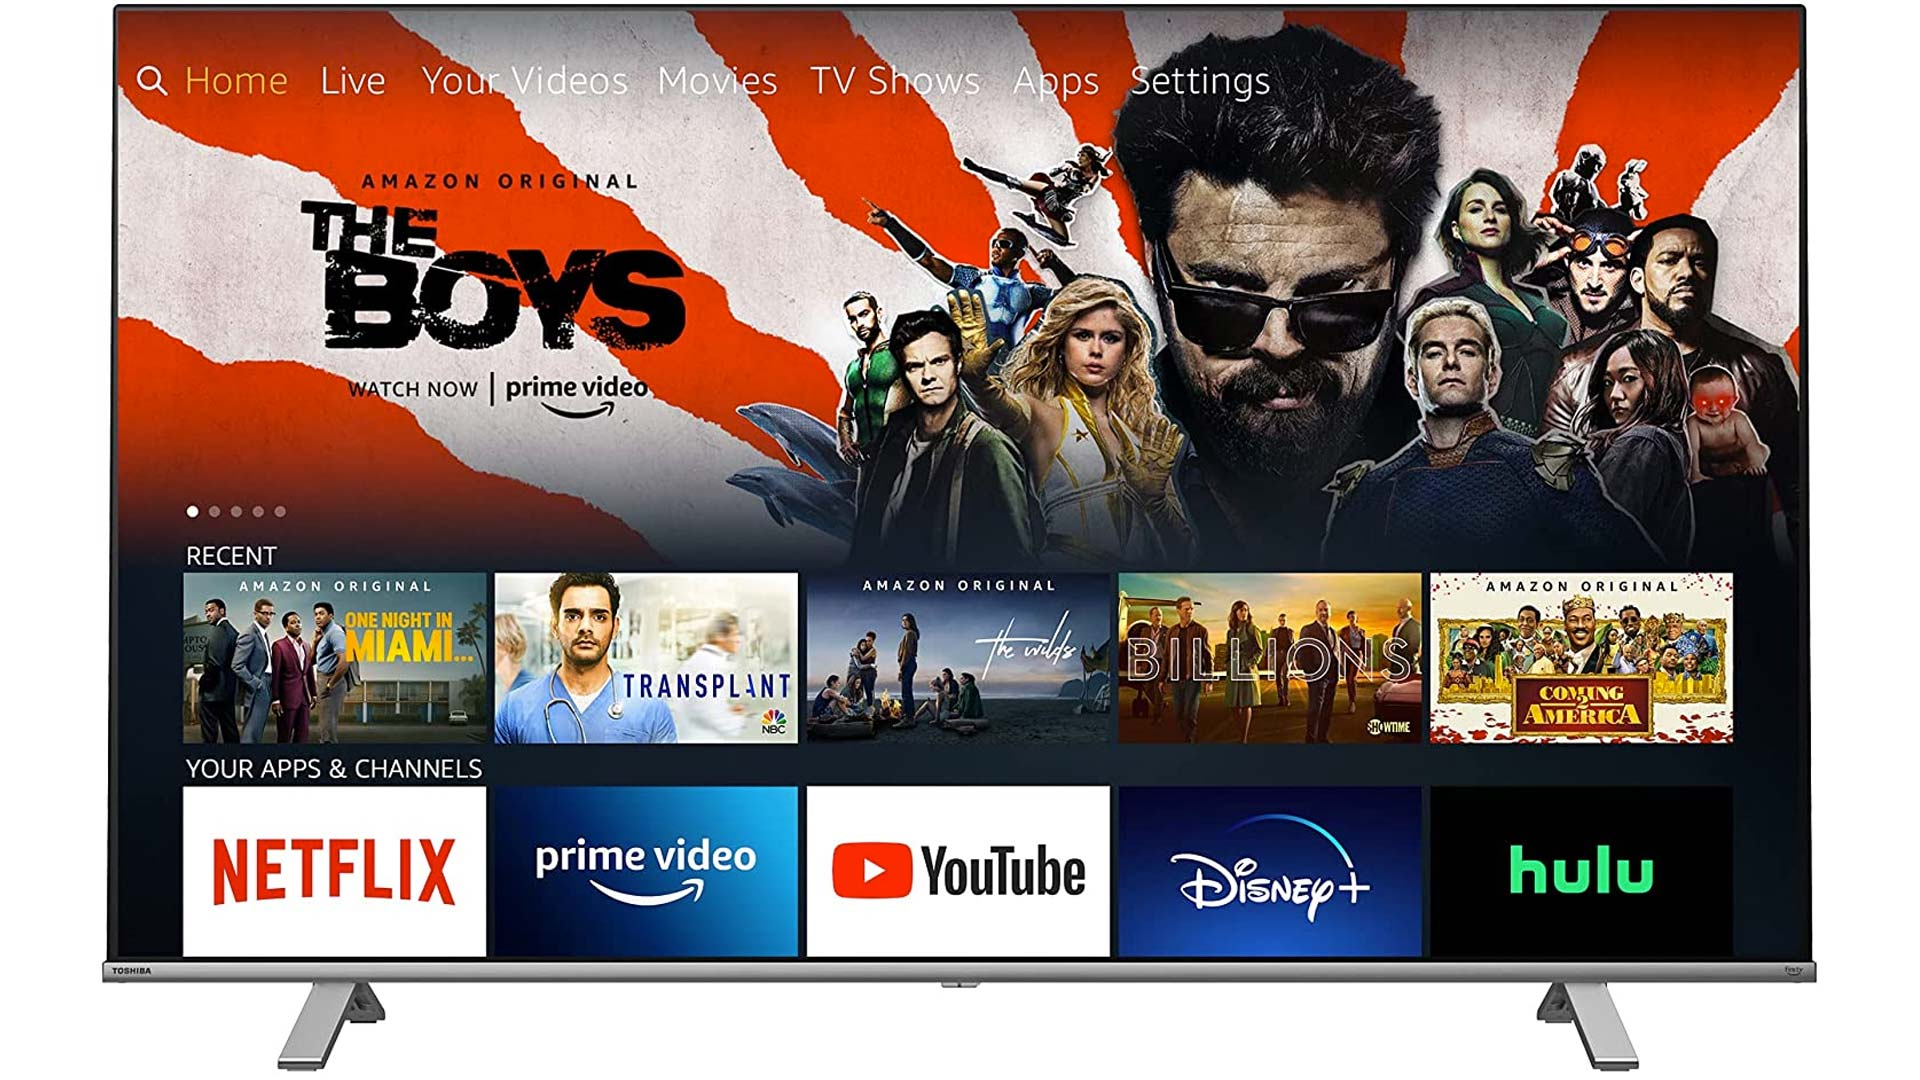 Fire TV Edition televisions can now change Picture and Sound settings with voice commands